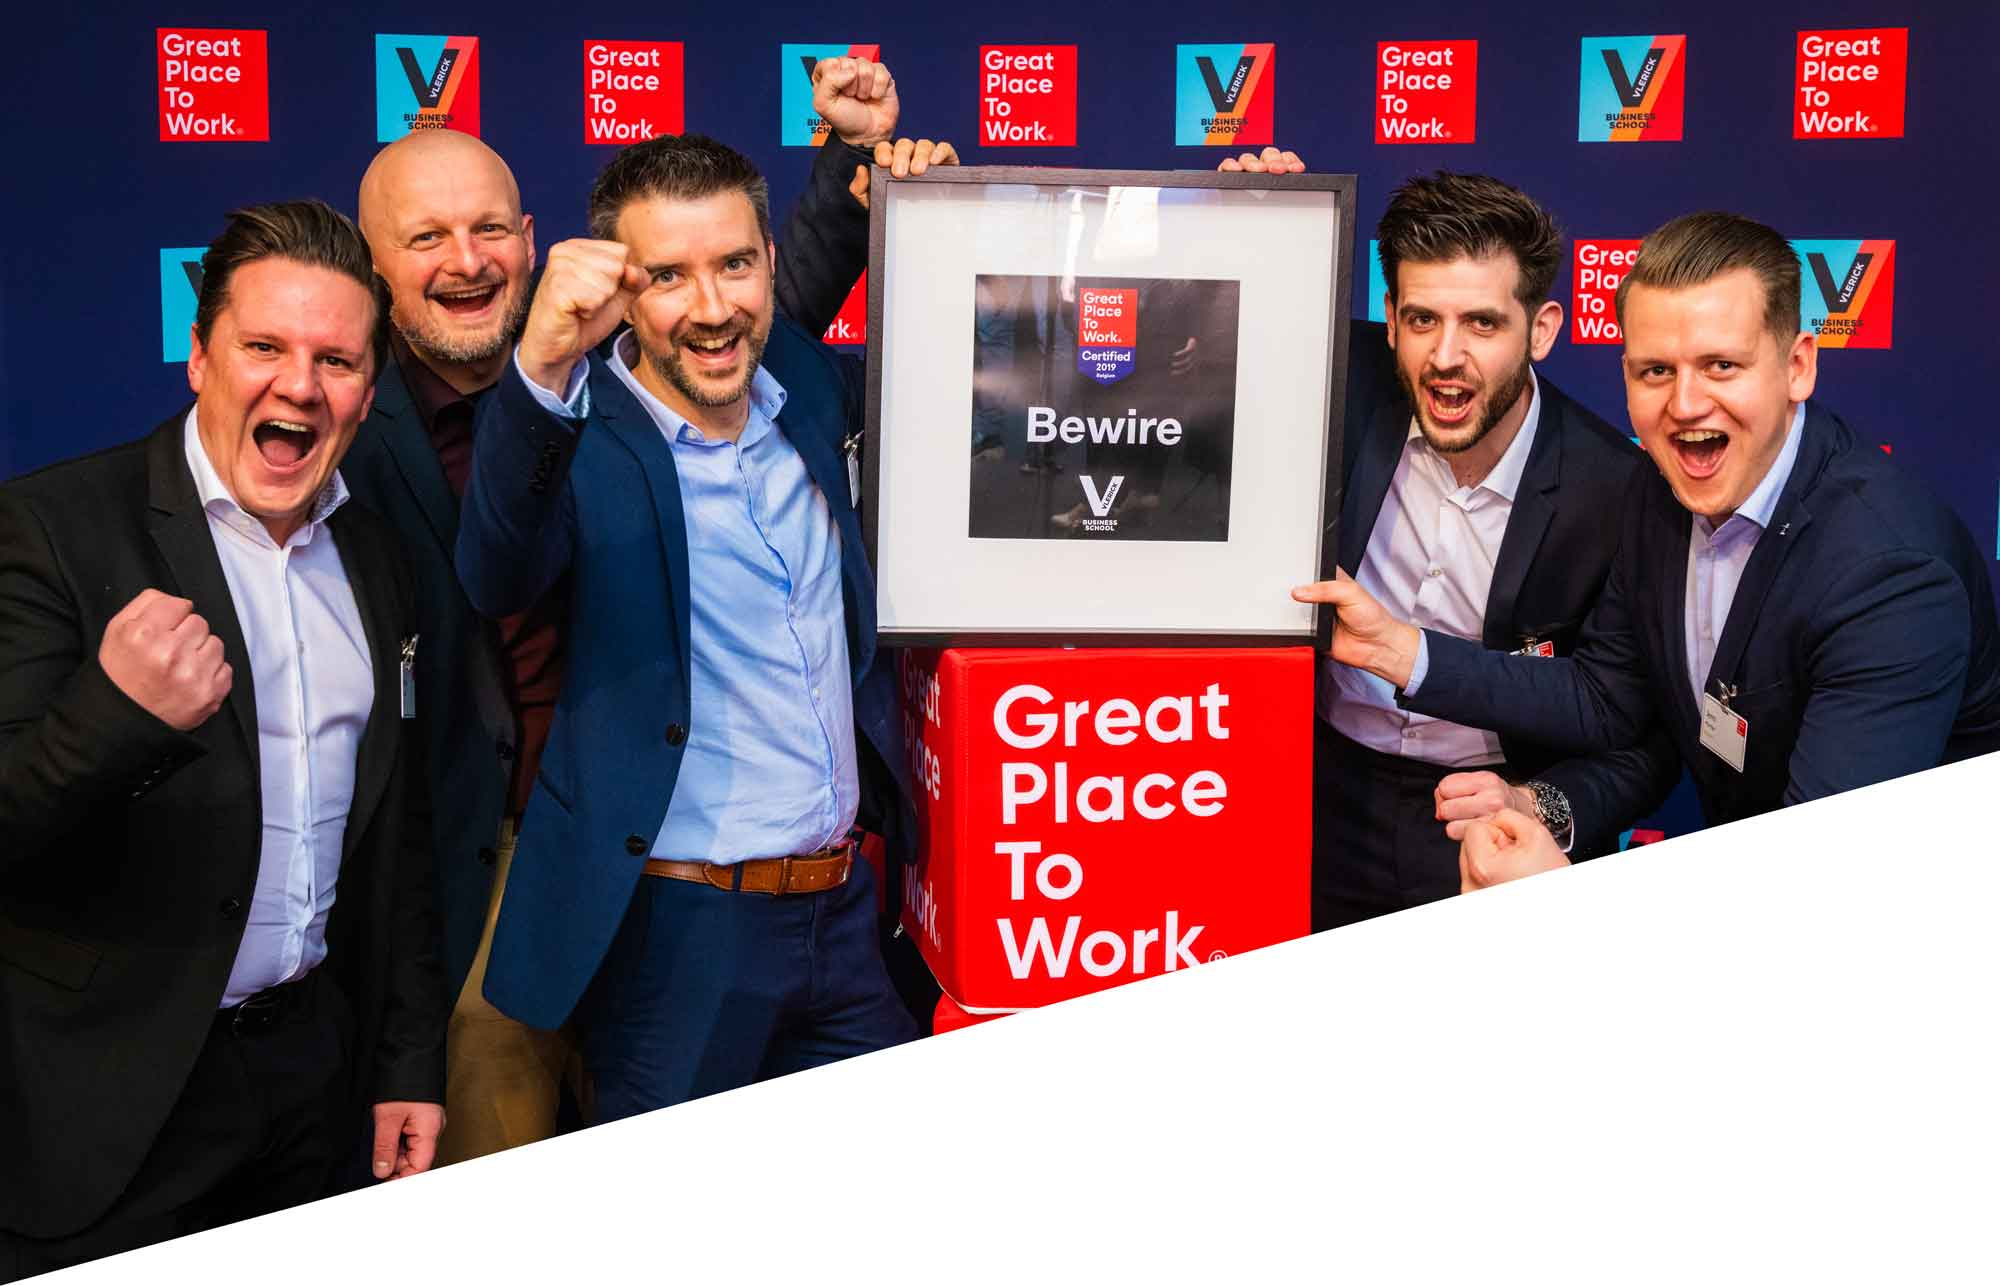 Bewire coördinators op de Great Place To Work uitreiking